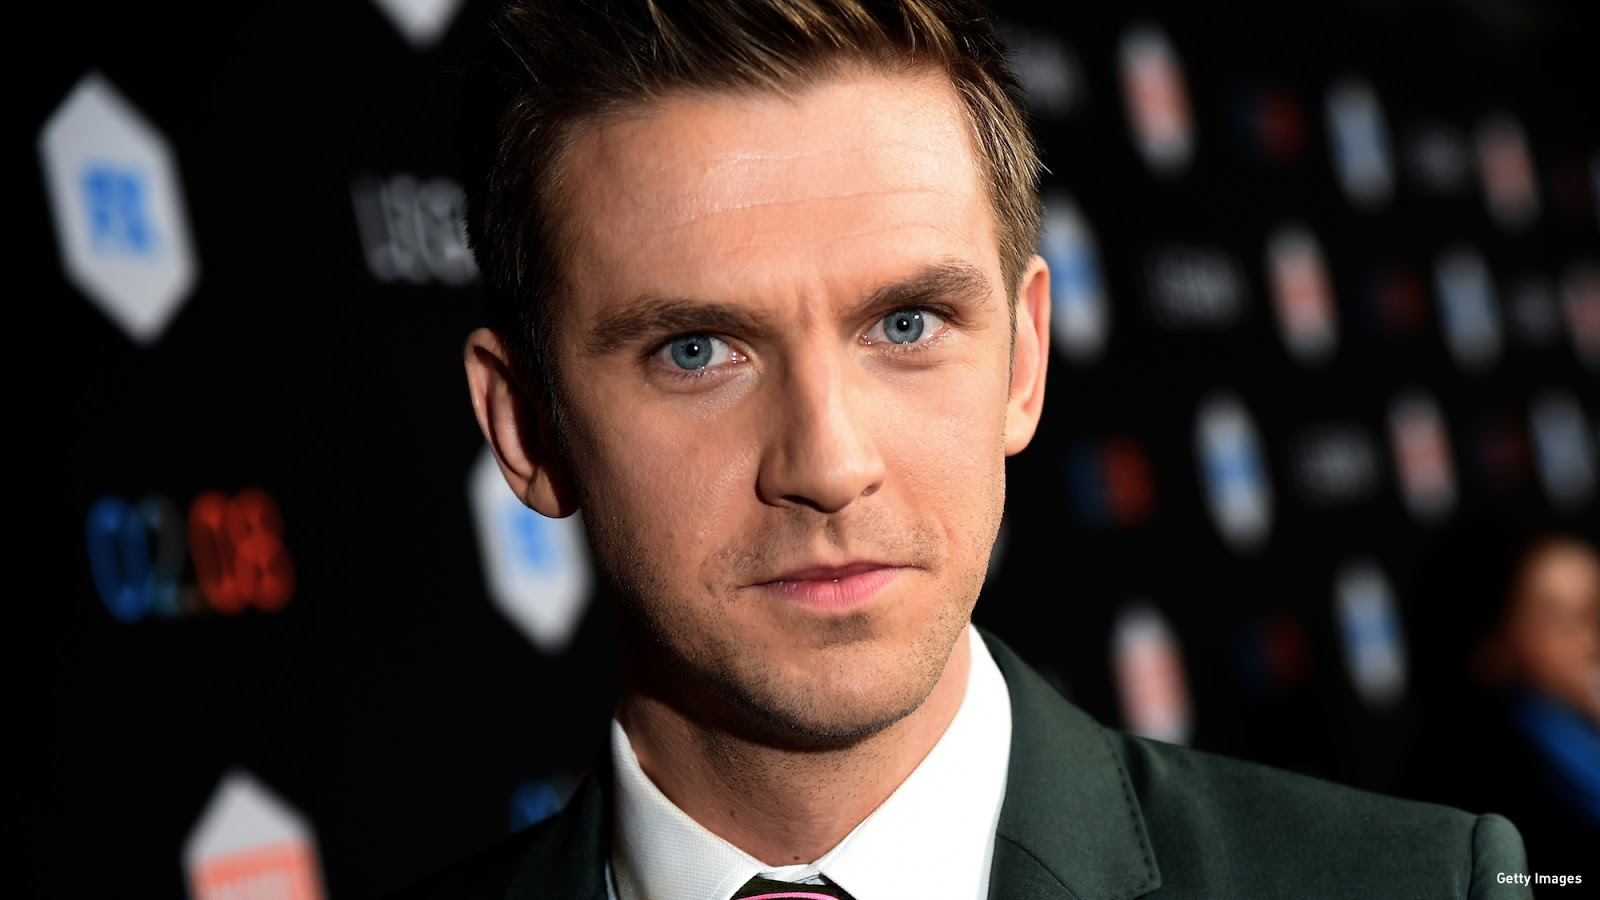 Dan Stevens (born 1982) naked (54 photo), Topless, Hot, Boobs, bra 2019